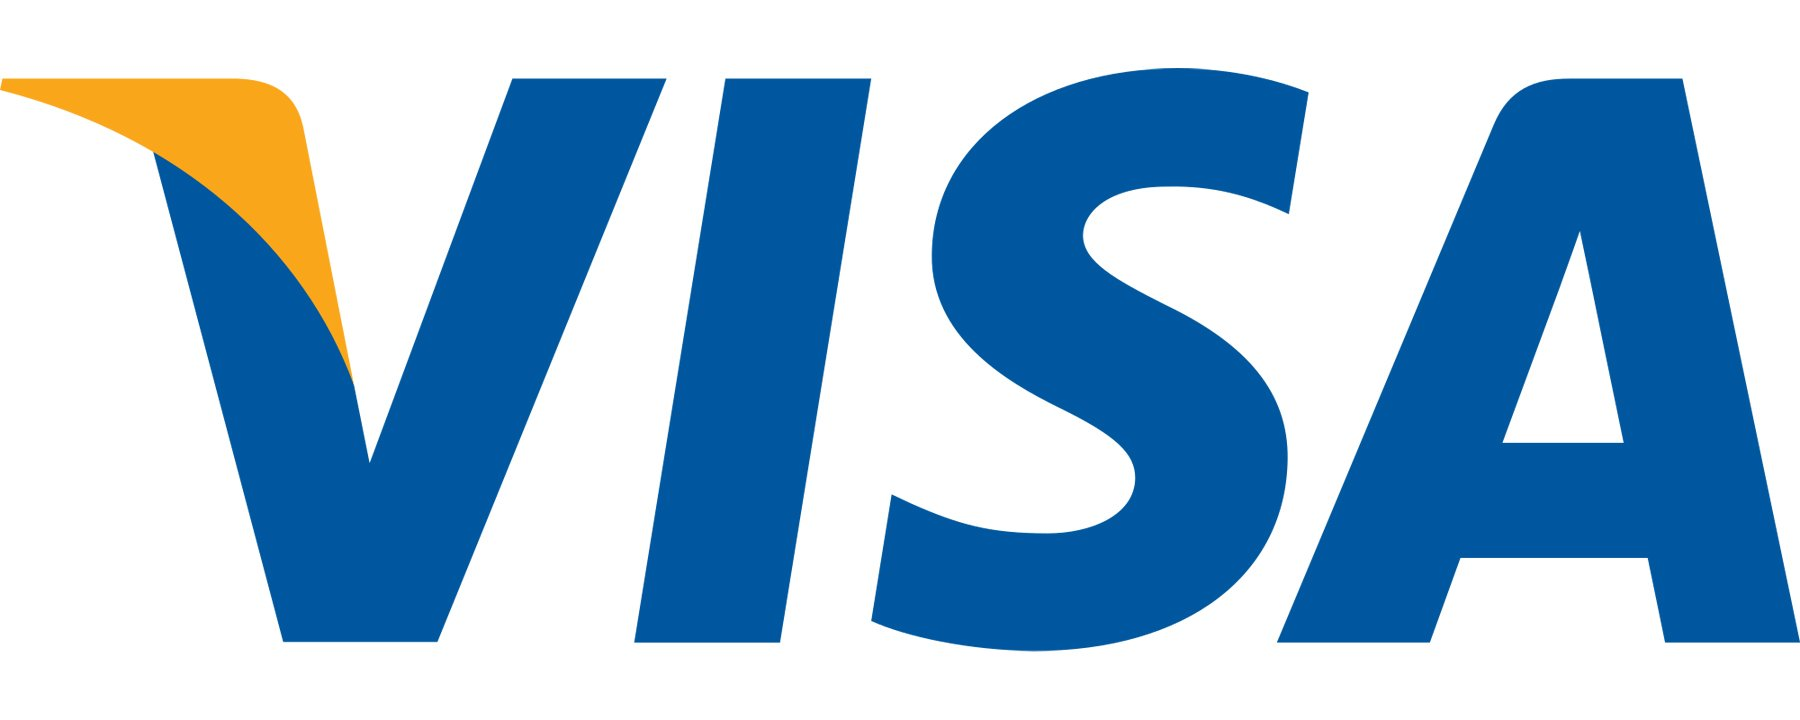 visa logo visa symbol meaning history and evolution